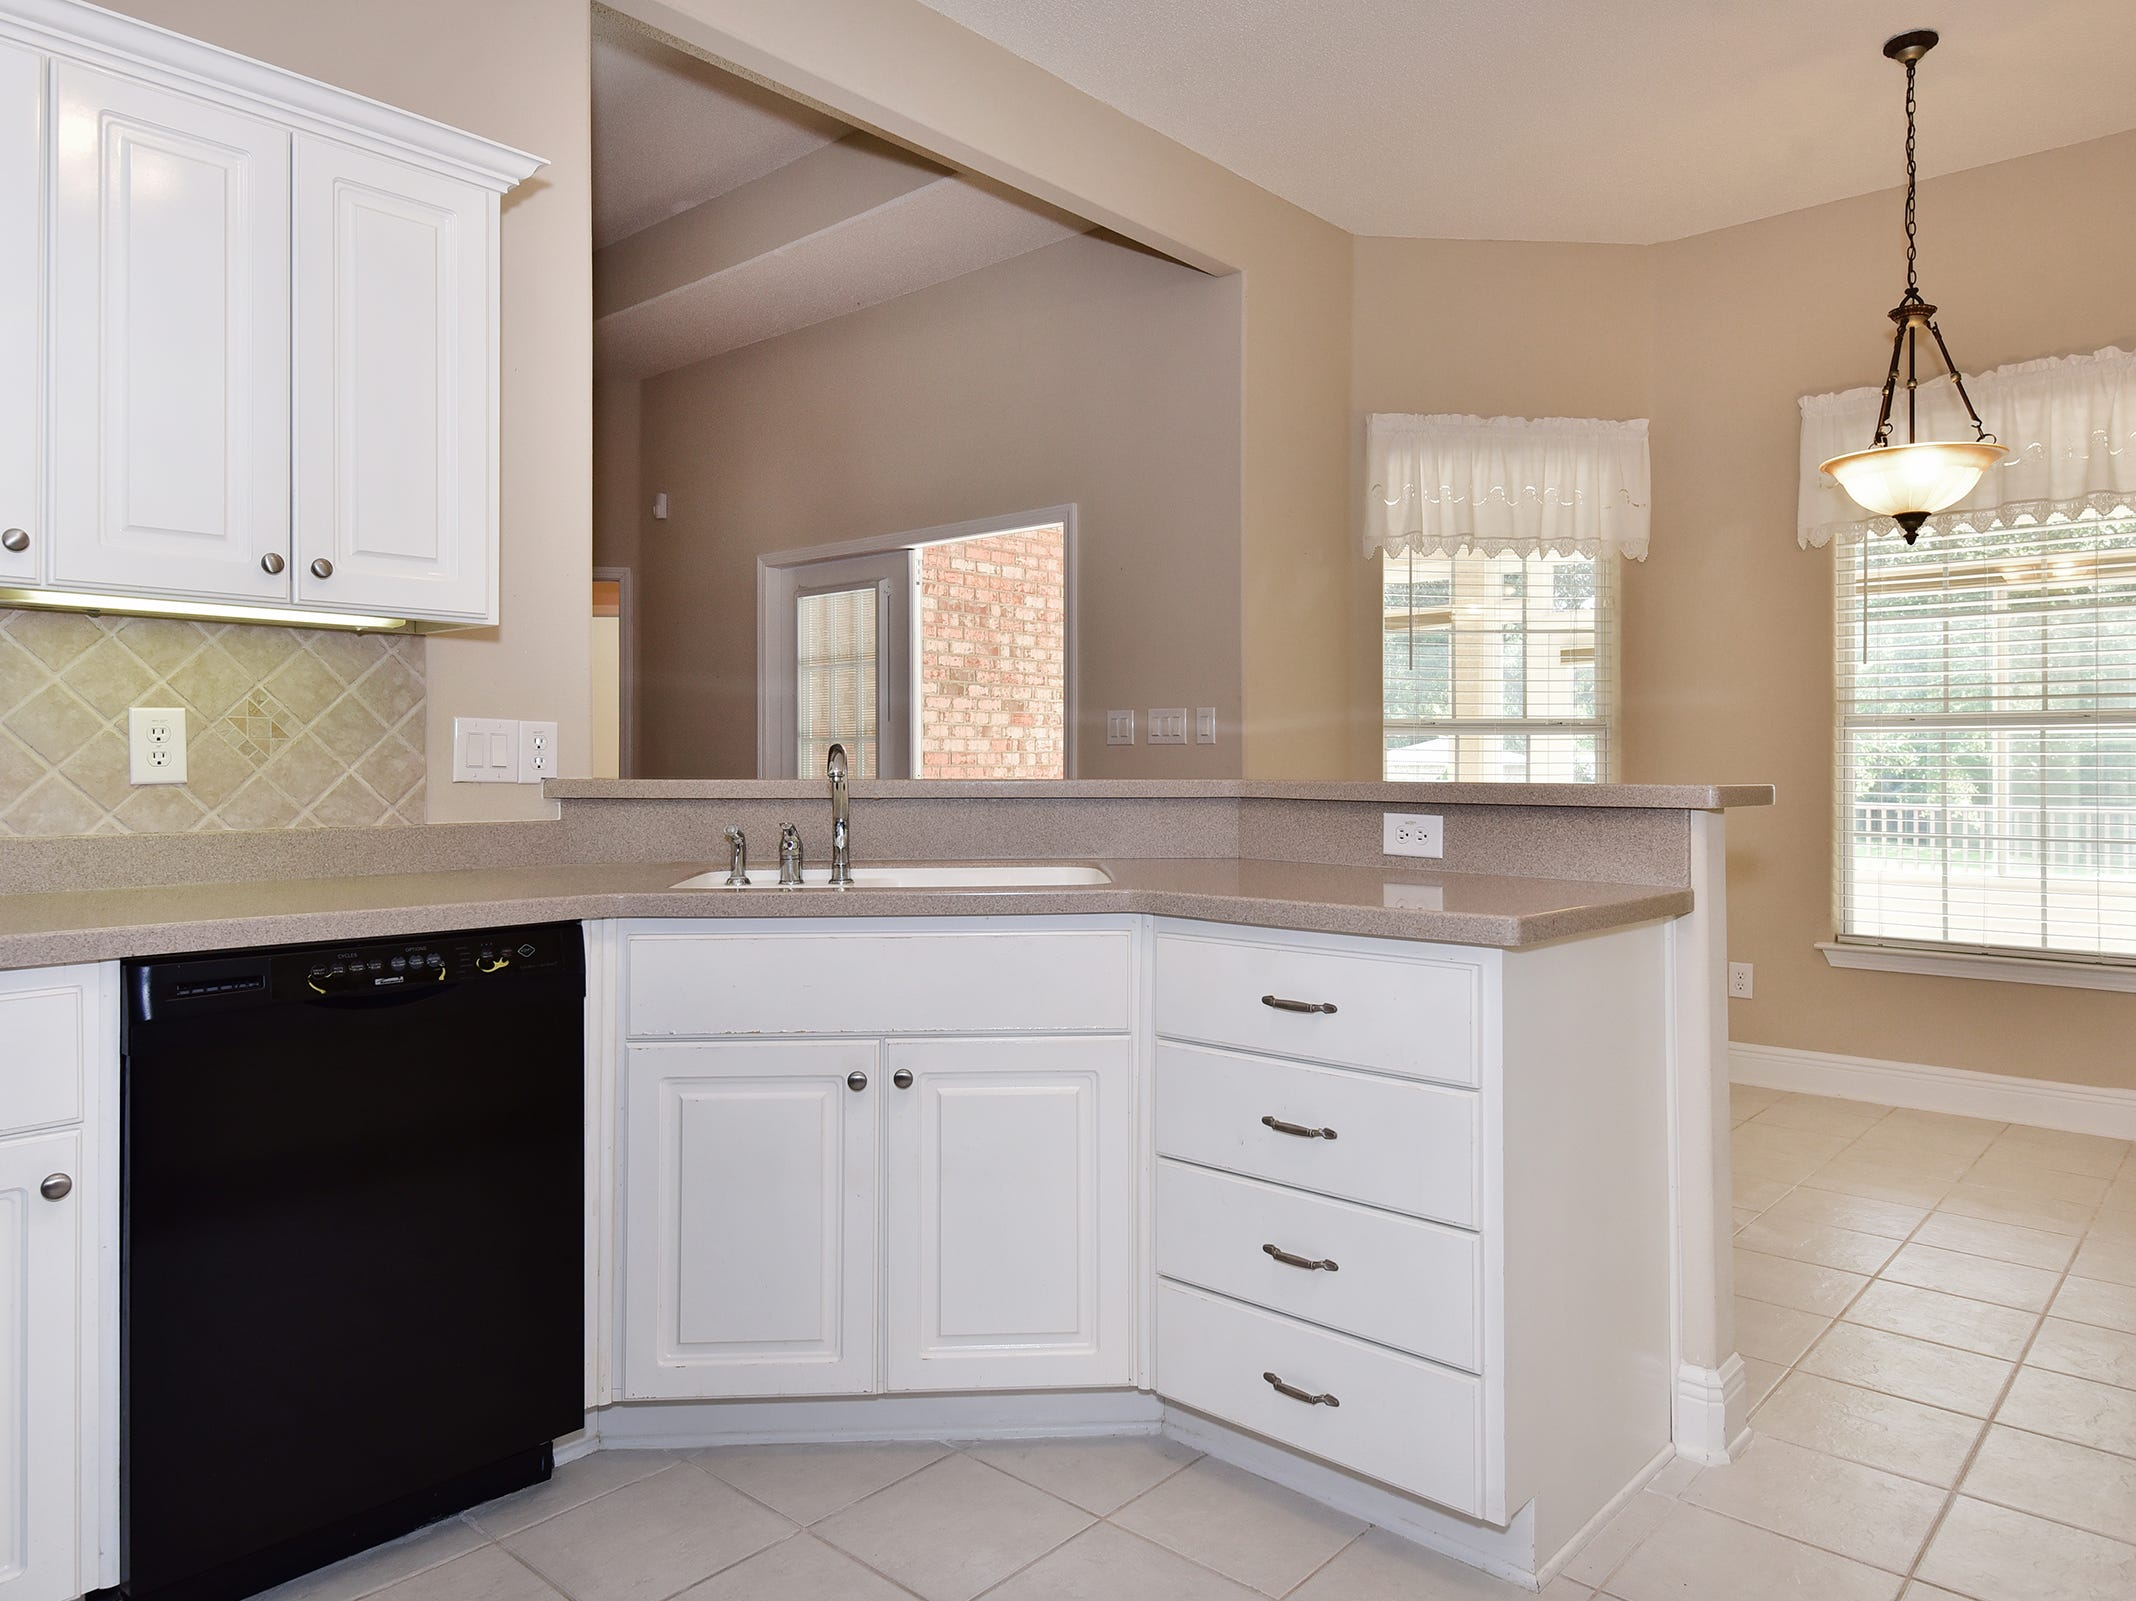 2363 Queens Ferry LaneThe open kitchen ajoins the casual dining space.